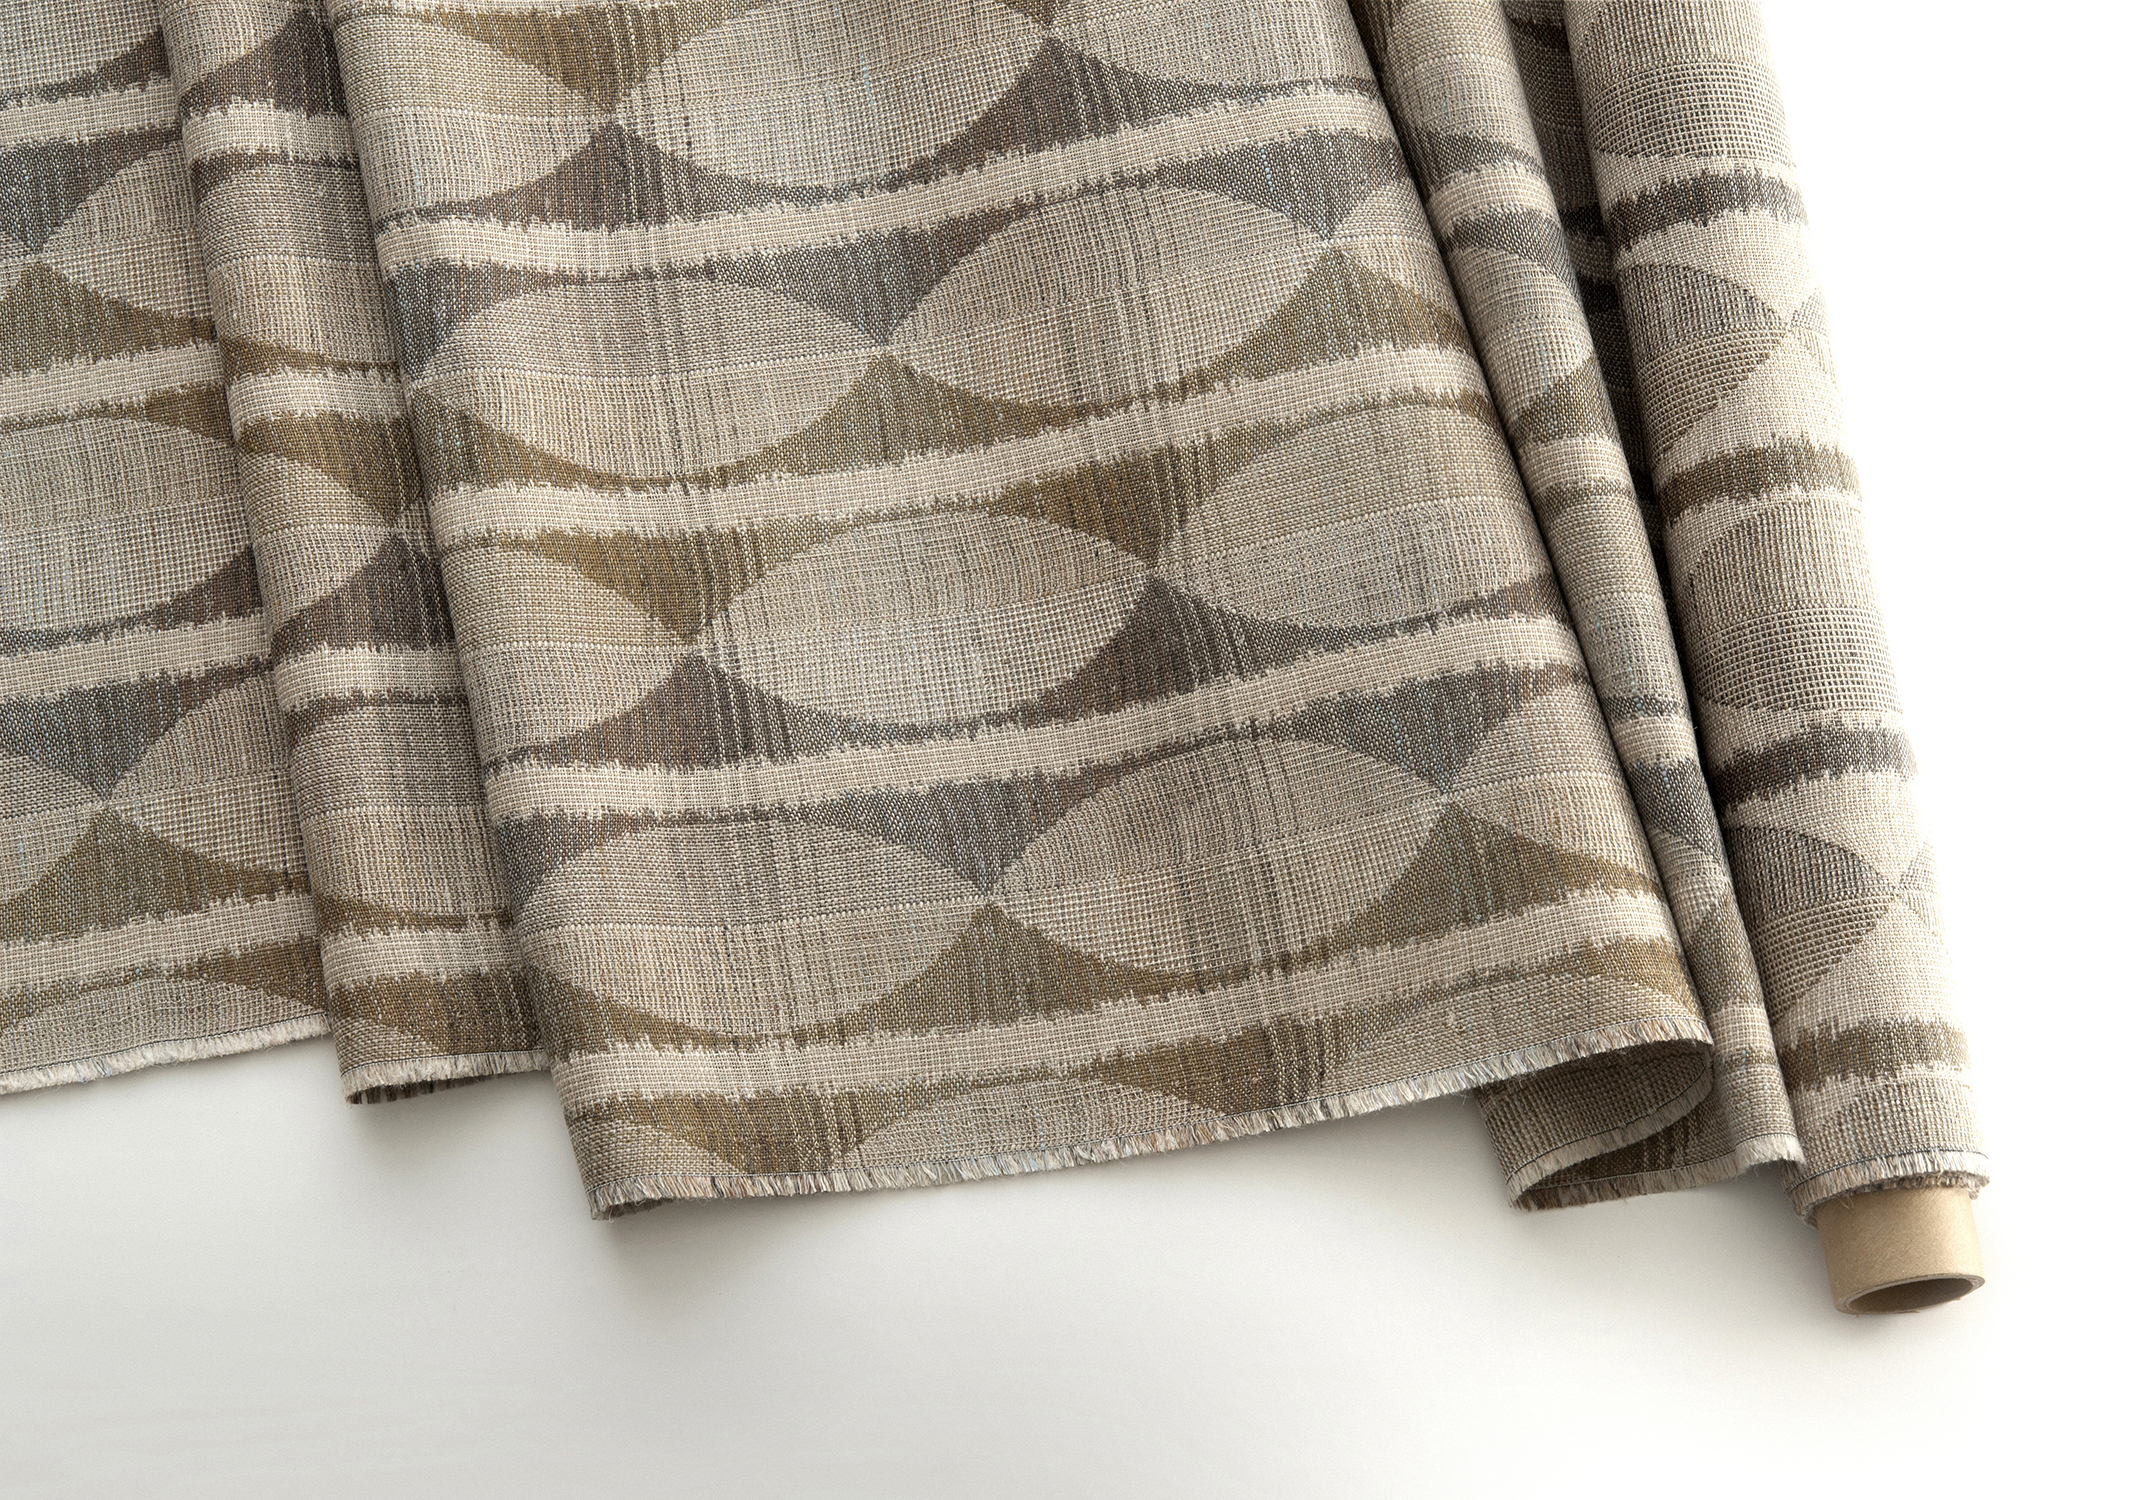 The Kerry Joyce Textile Collection